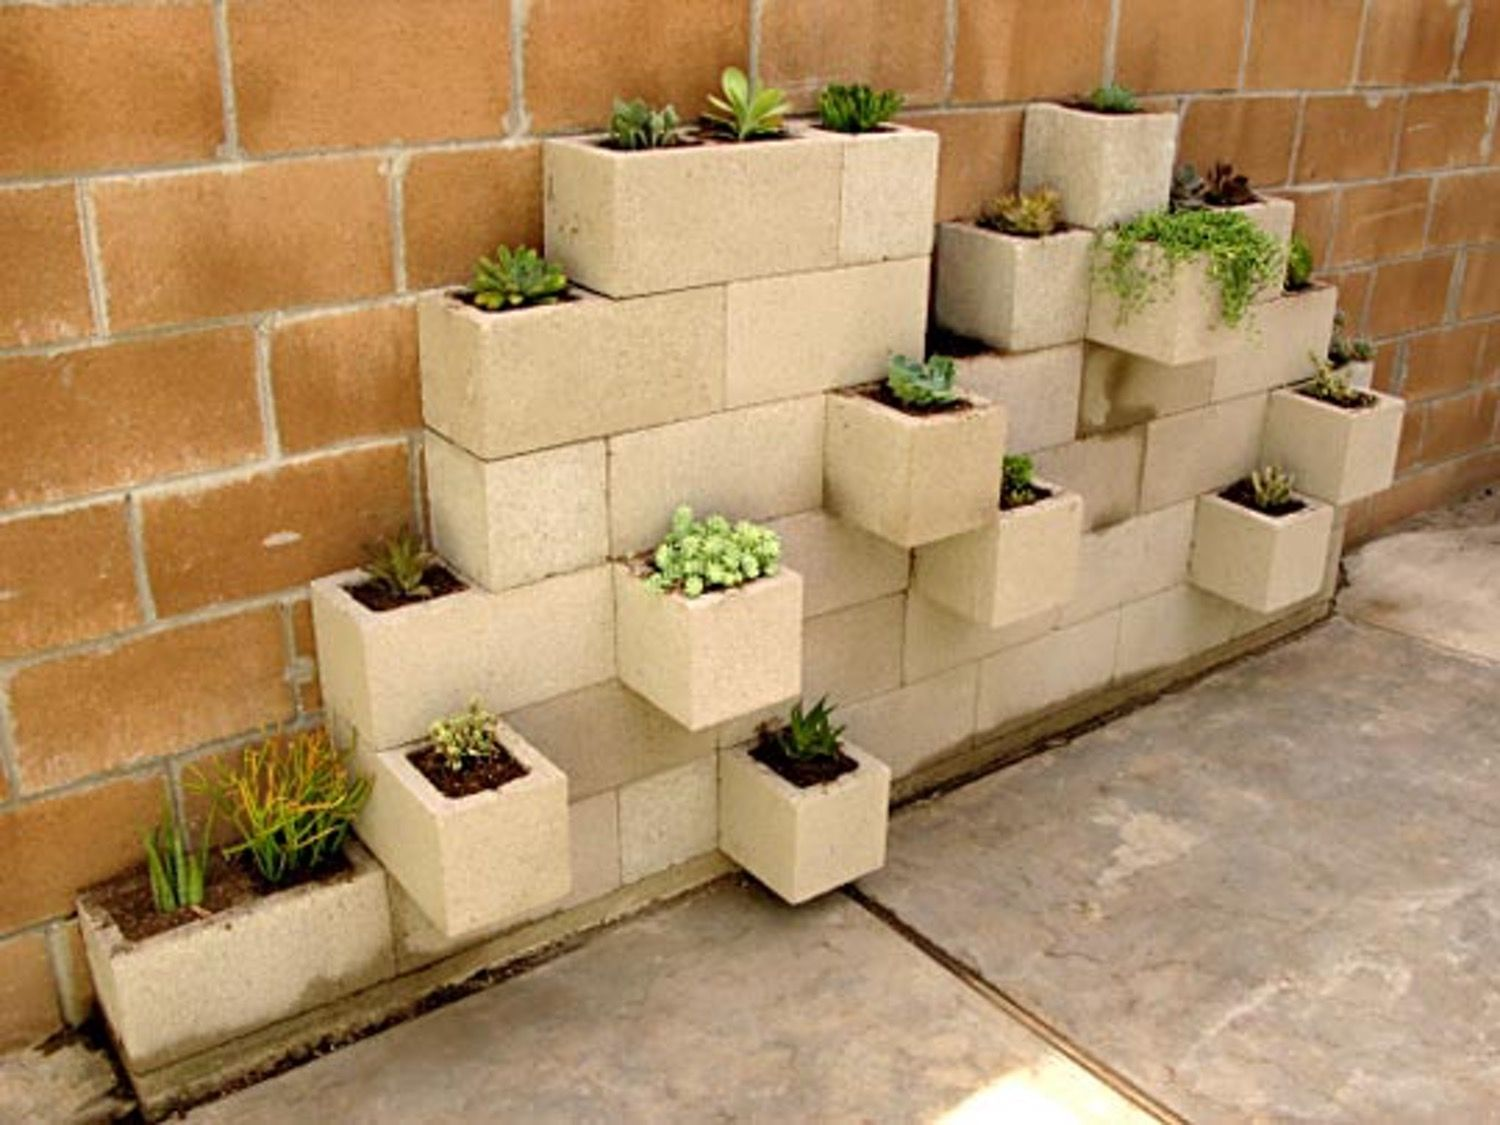 Budget & Small Space Friendly: DIY Cinderblock Planters | Planters ...